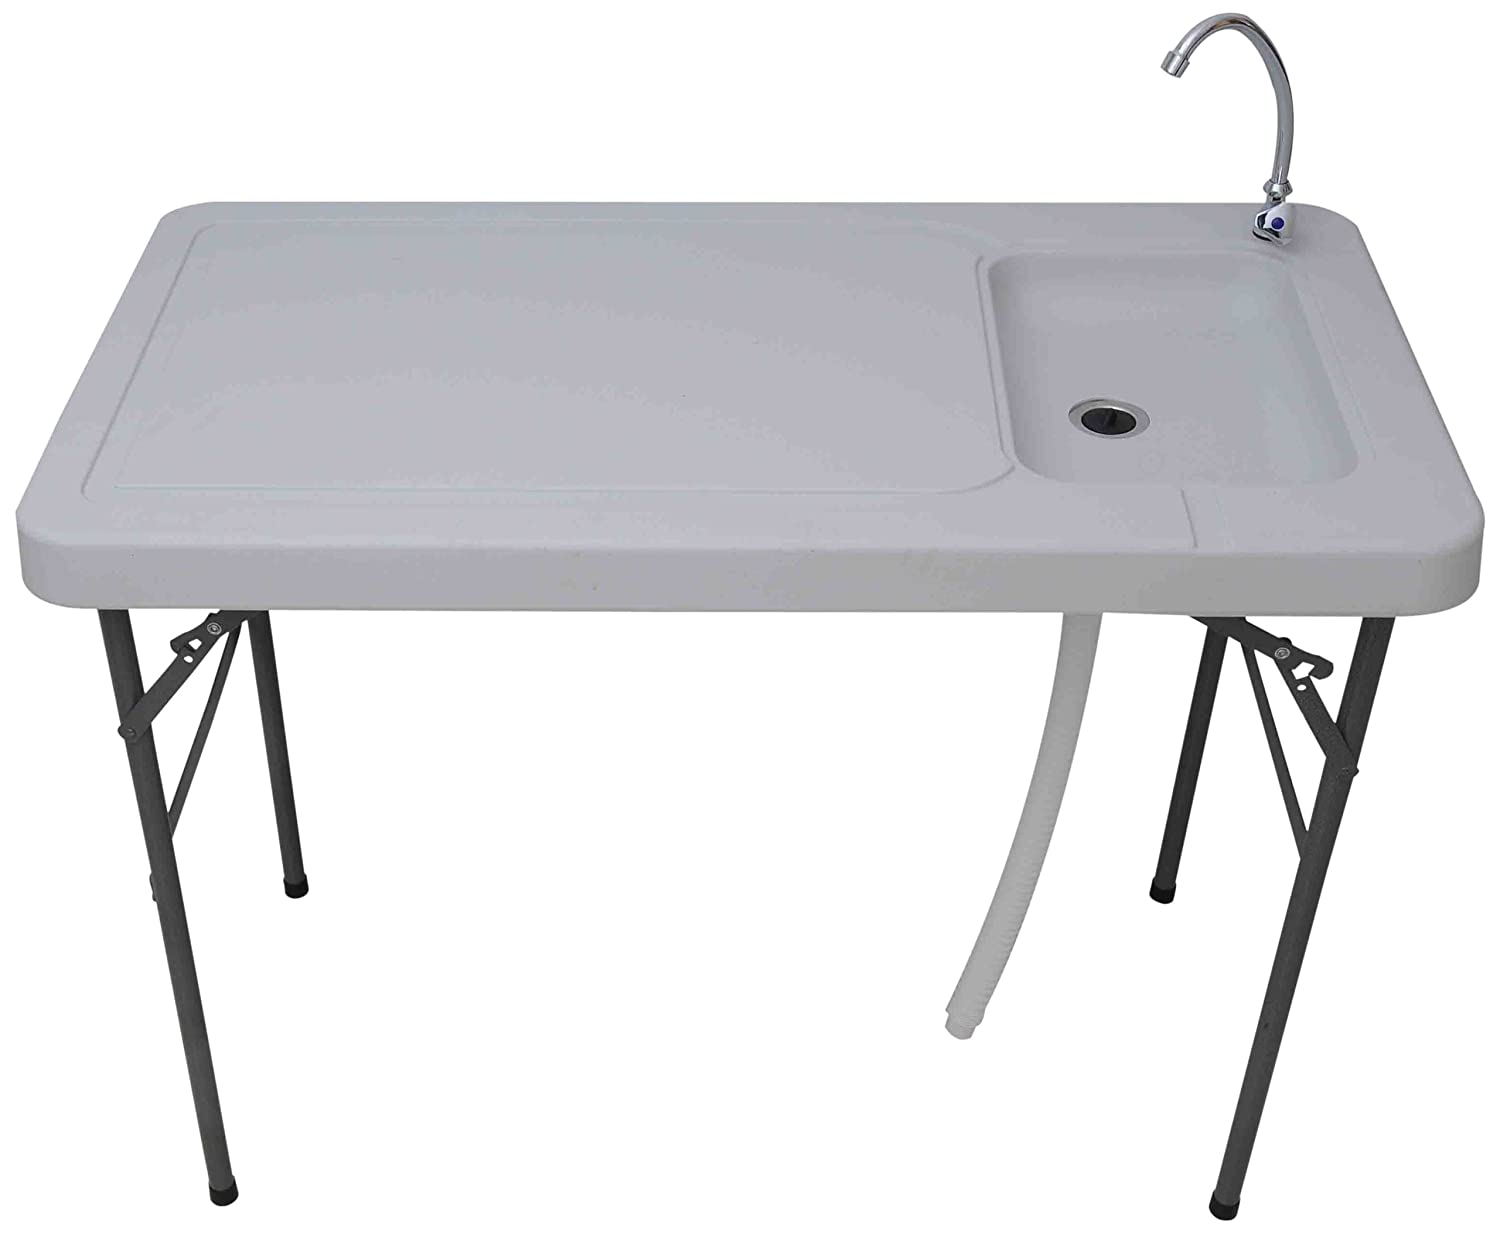 Coleman fish cleaning table re camping sink - Palm Springs Outdoor Folding Portable Fish Filet And Hunting Table With Sink White 6 Inch Amazon Ca Sports Outdoors